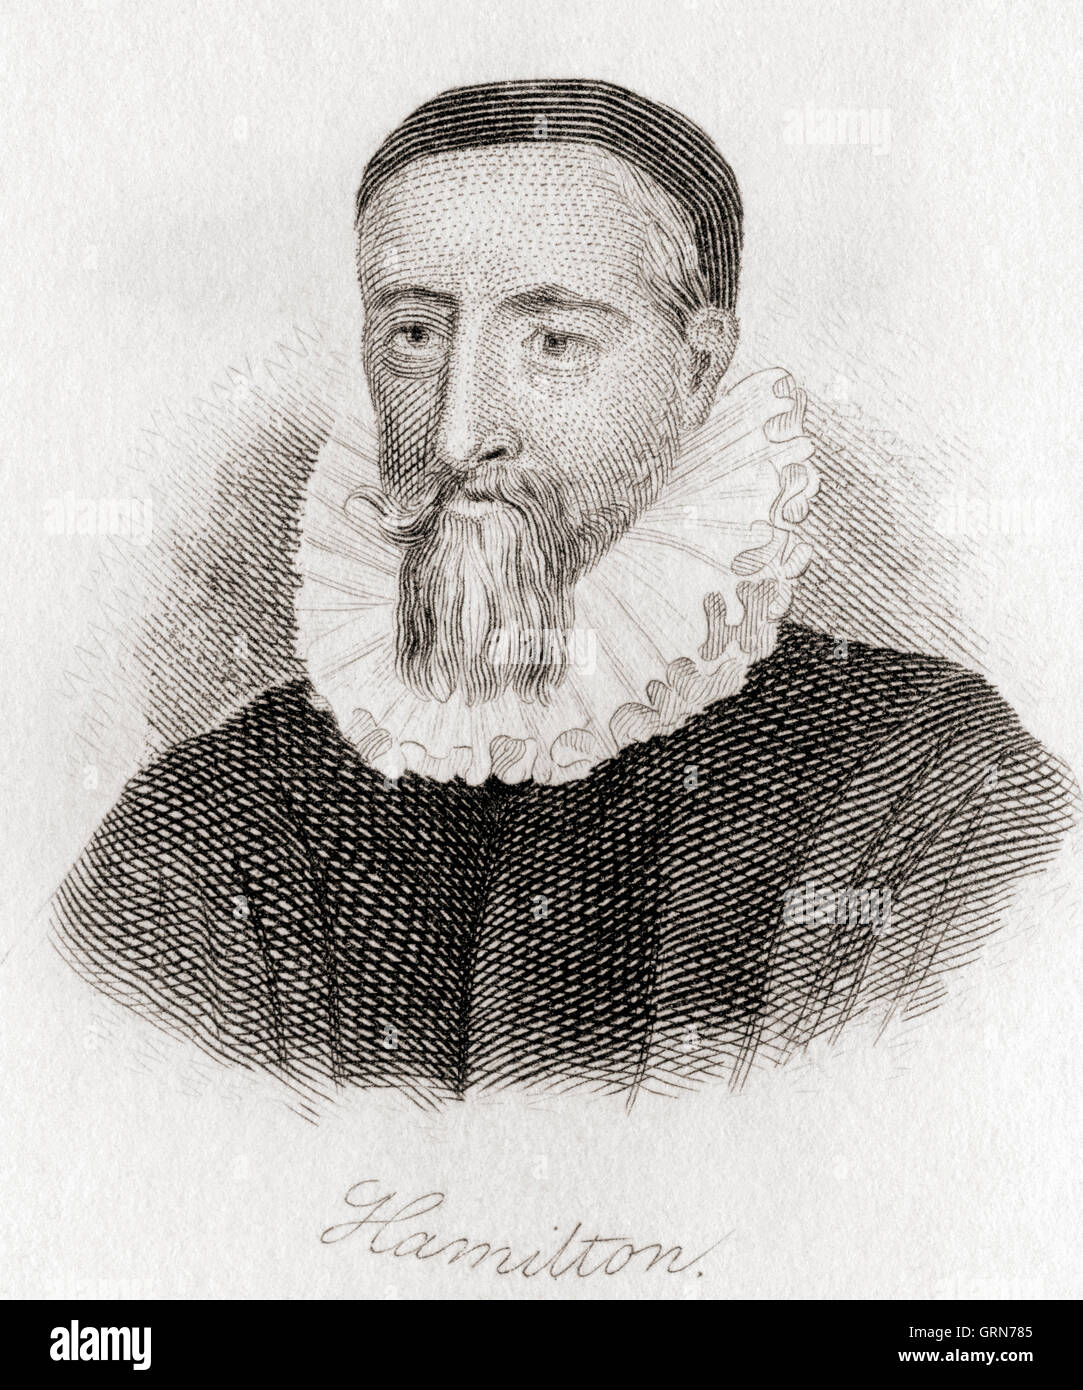 Patrick Hamilton, 1504 – 1528.  Scottish churchman and an early Protestant Reformer in Scotland, tried for heresy - Stock Image